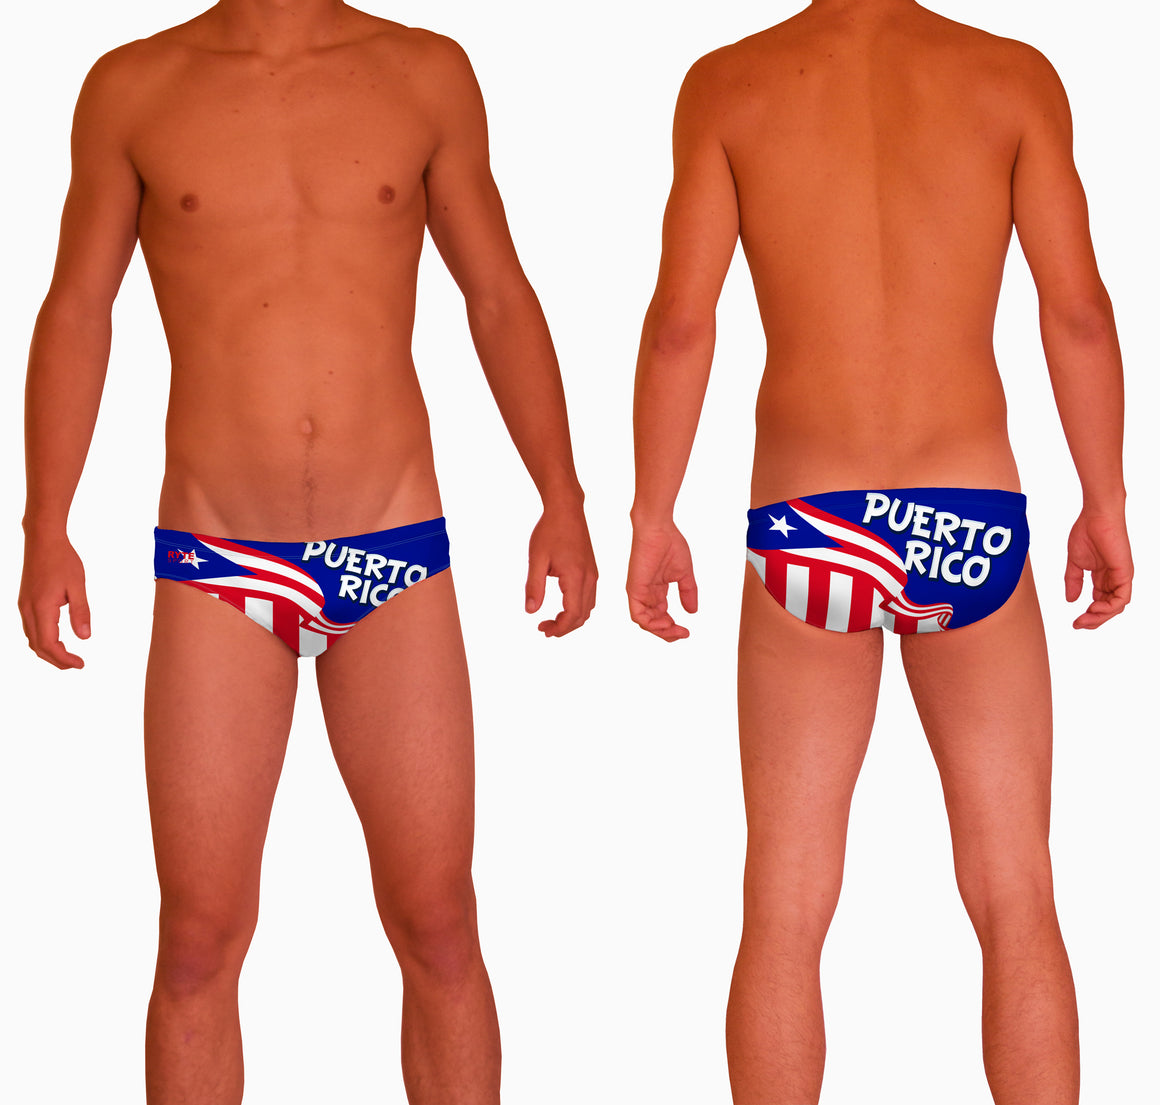 Puerto Rico Mens Water Polo Suit  Features:  Compression Fitting PBT/Polyester Blend Fabric with Four-way stretch technology Dual Layer Lined Brief Low Stretch Flat Drawcord Flatlock Stitch Construction prevents chafe Turned In Liner Seams for Optimum Comfort Chlorine Resistant Fabric